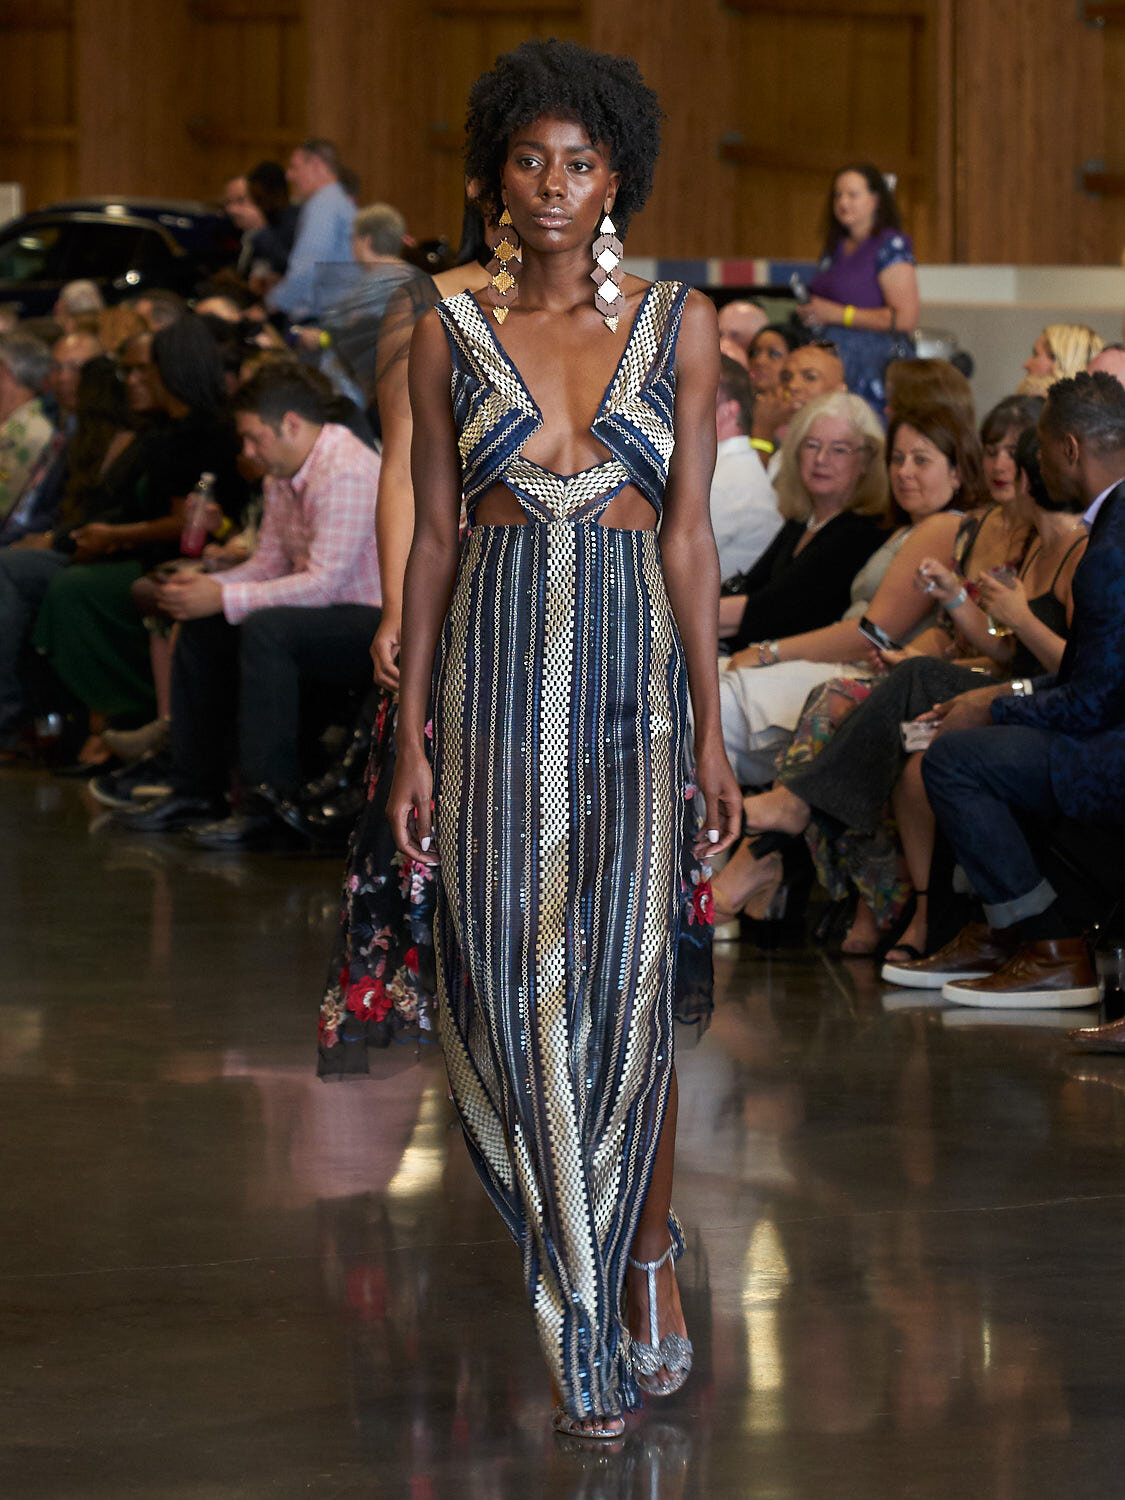 AMVISUALS-Couture-Cars-Fashion-Show-LeMay-Museum-Tacoma-Fashion-3.jpg